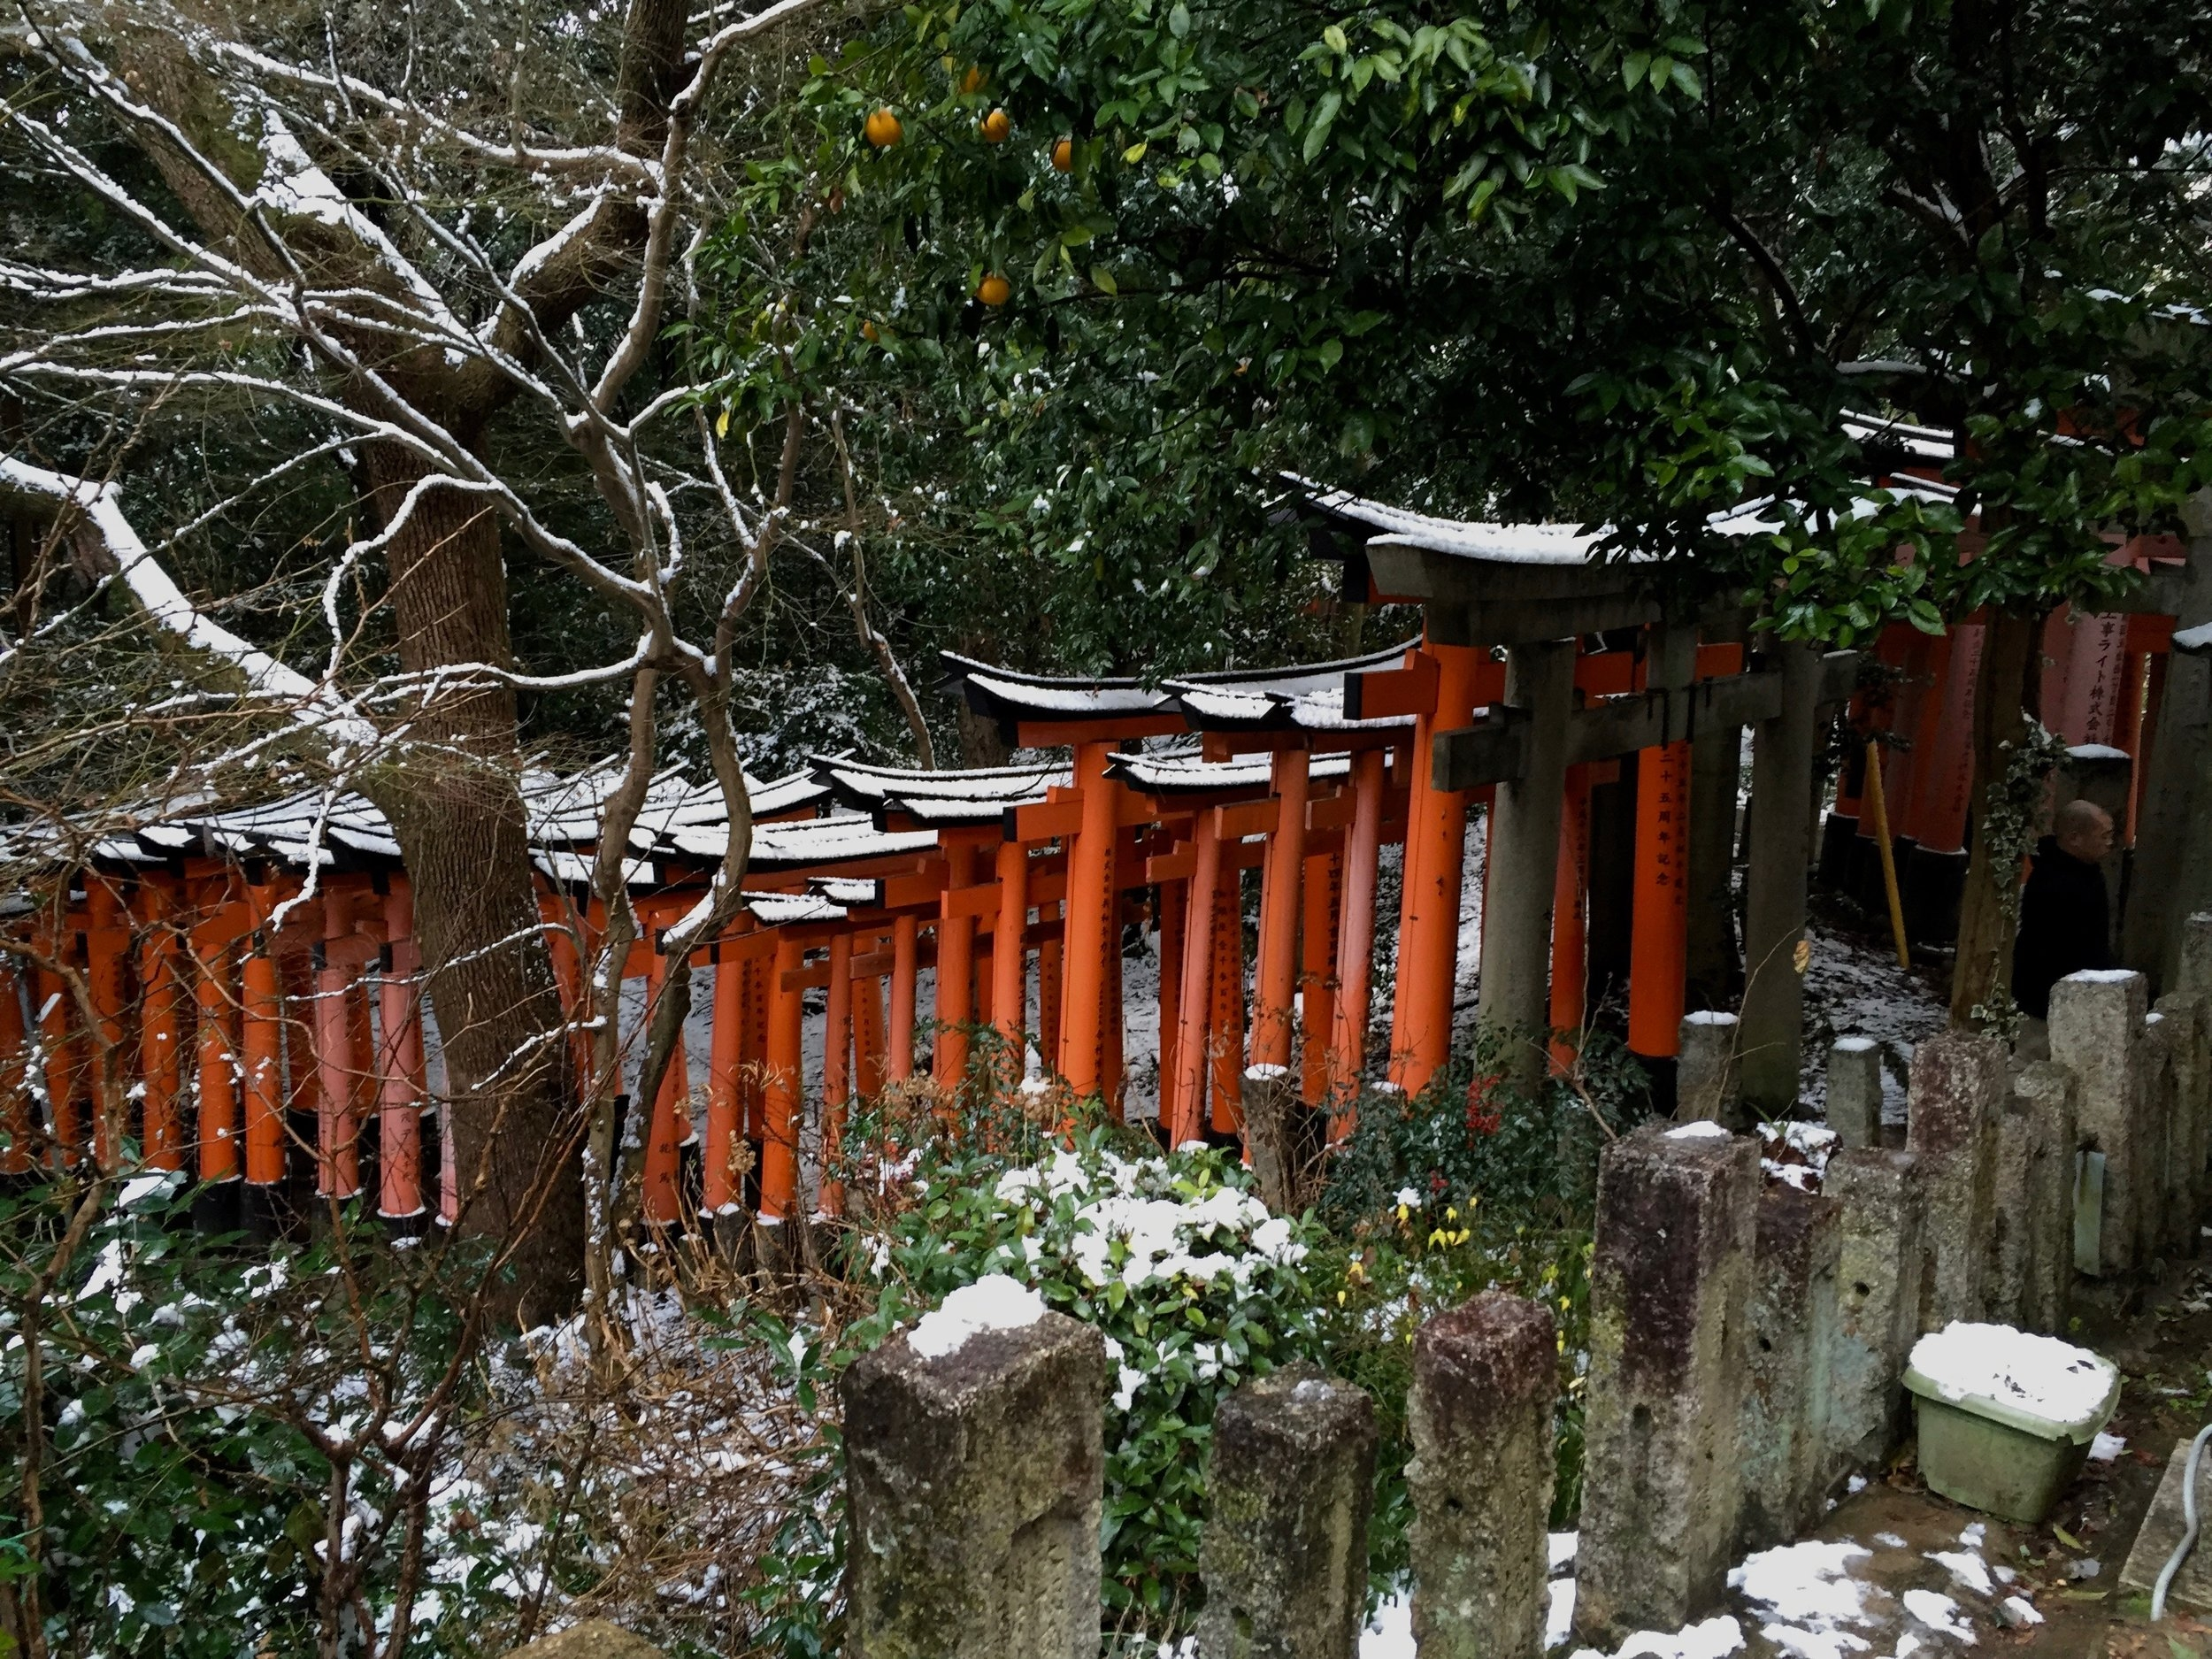 snowy fushimi inari in kyoto, japan with nature and bright orange mandarines on a cold winter day in 2017.